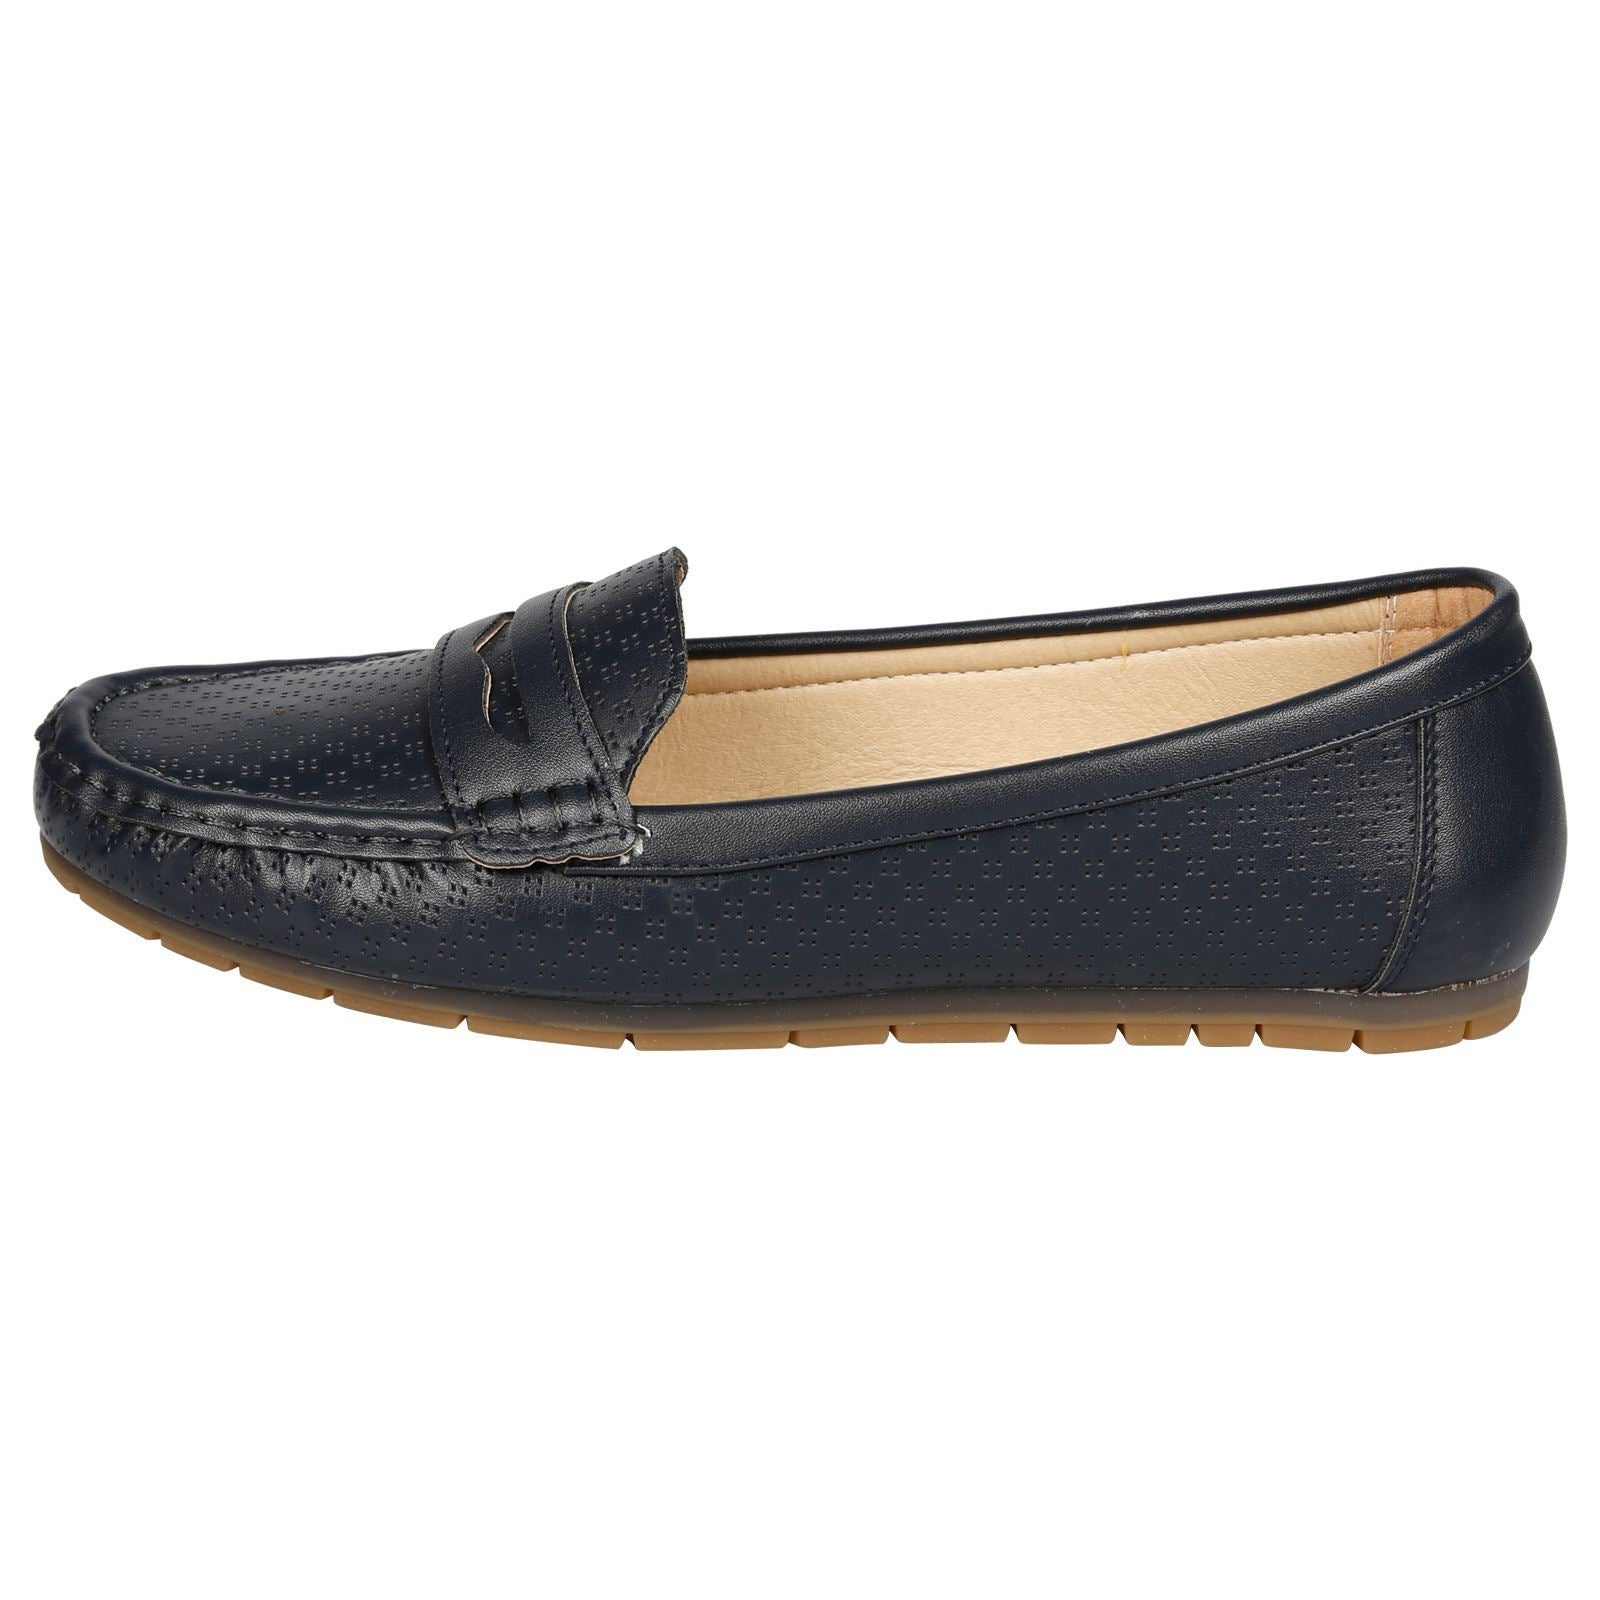 Celinda Textured Mocassins in Navy Faux Leather